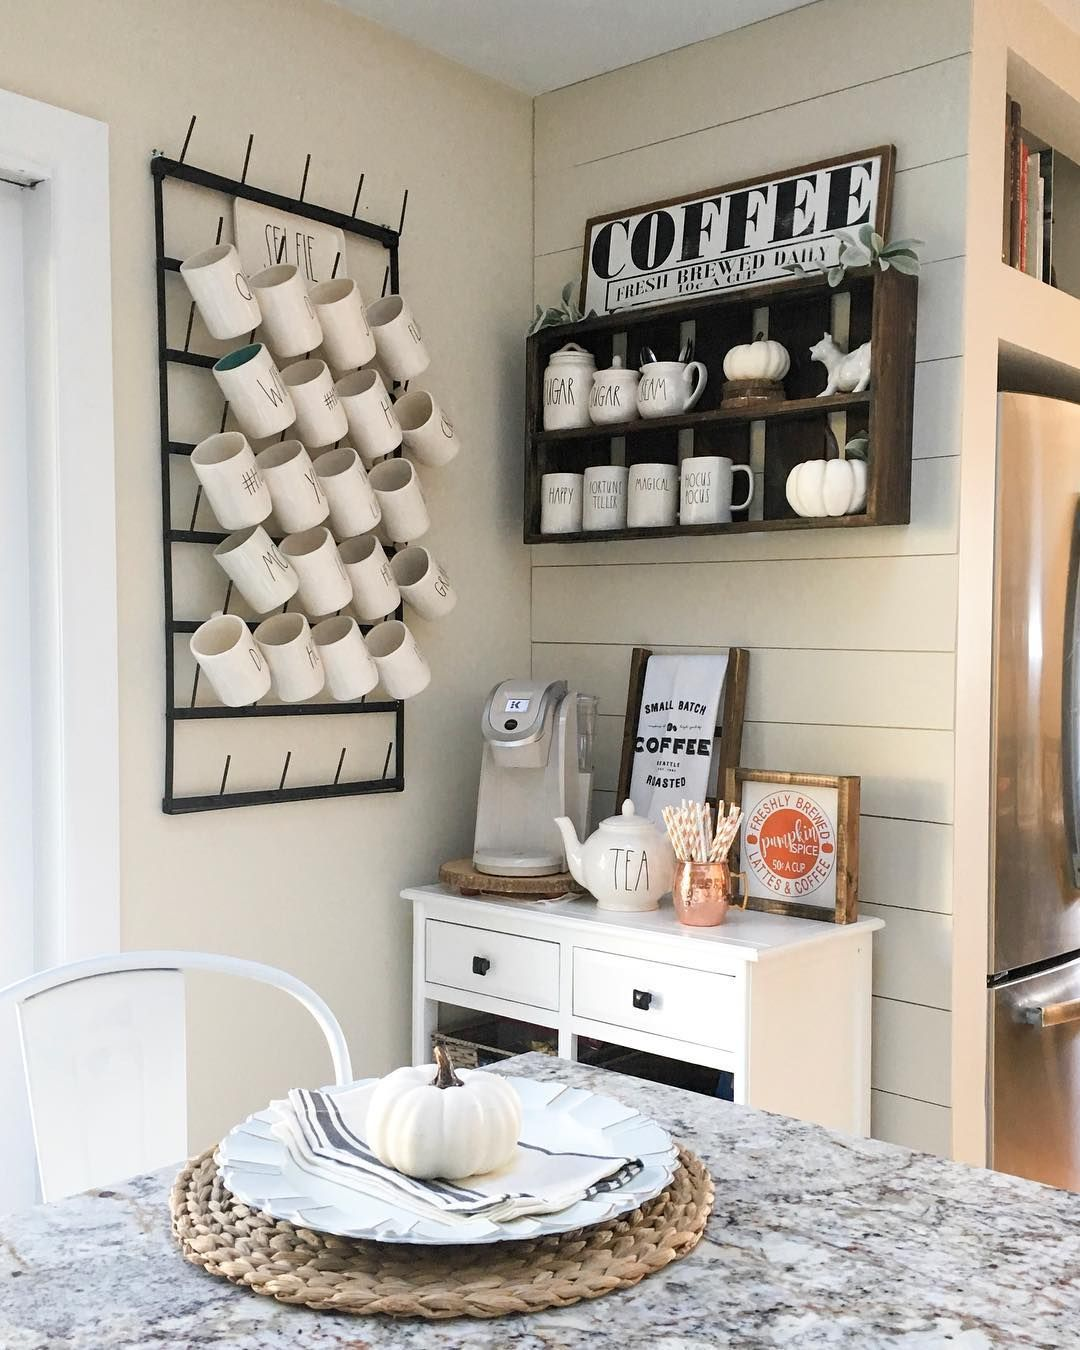 (@oak.hill.farms) (With images) | Coffee nook, Kitchen ...